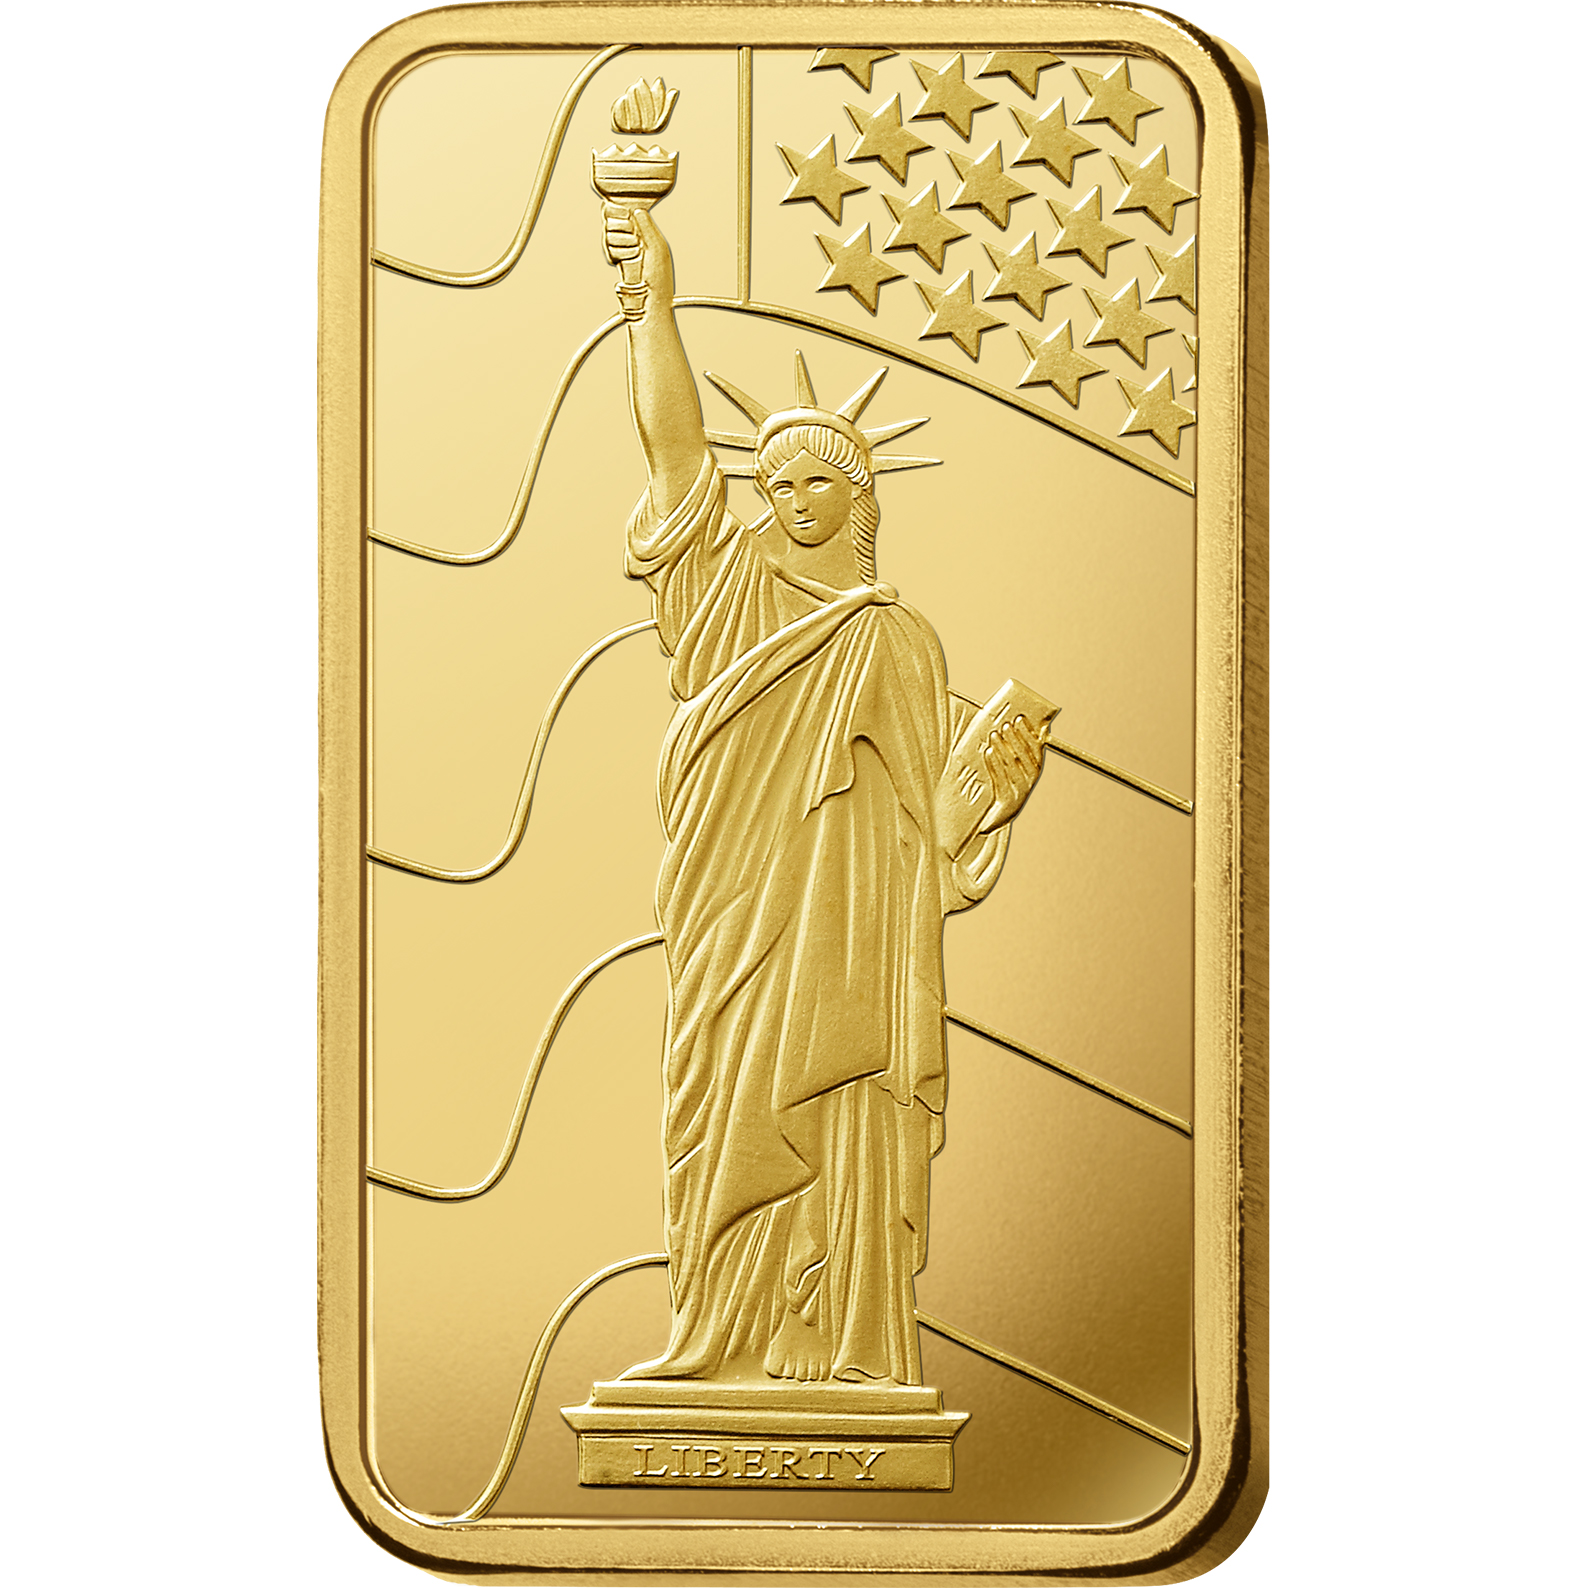 1 oz Fine Gold Bar 999.9 - PAMP Suisse Liberty